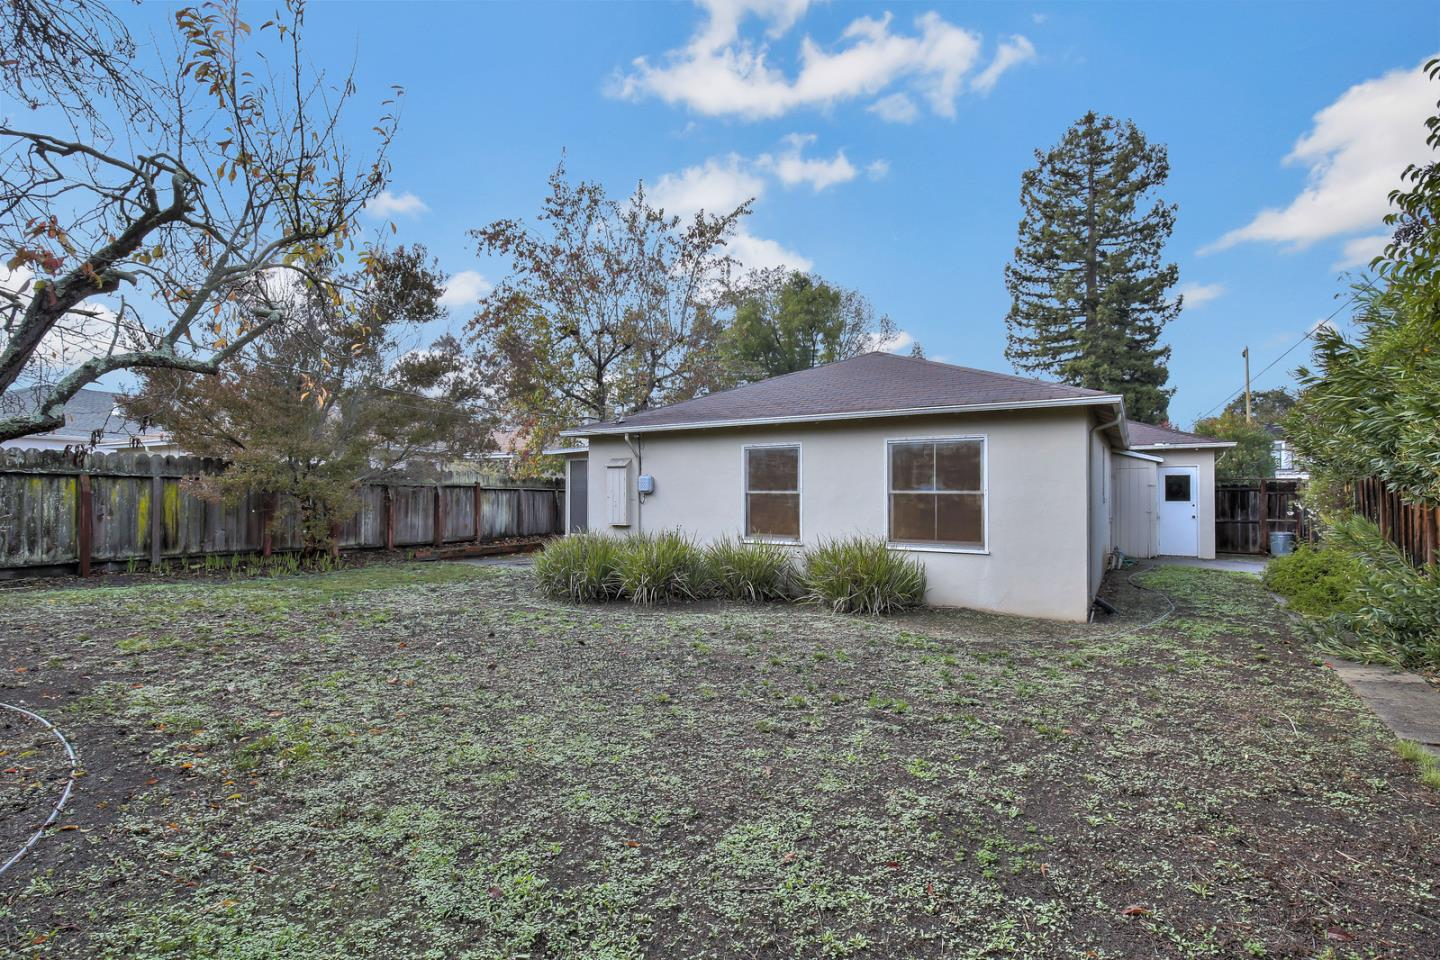 2641 Carolina Avenue Redwood City, CA 94061 - MLS #: ML81732905